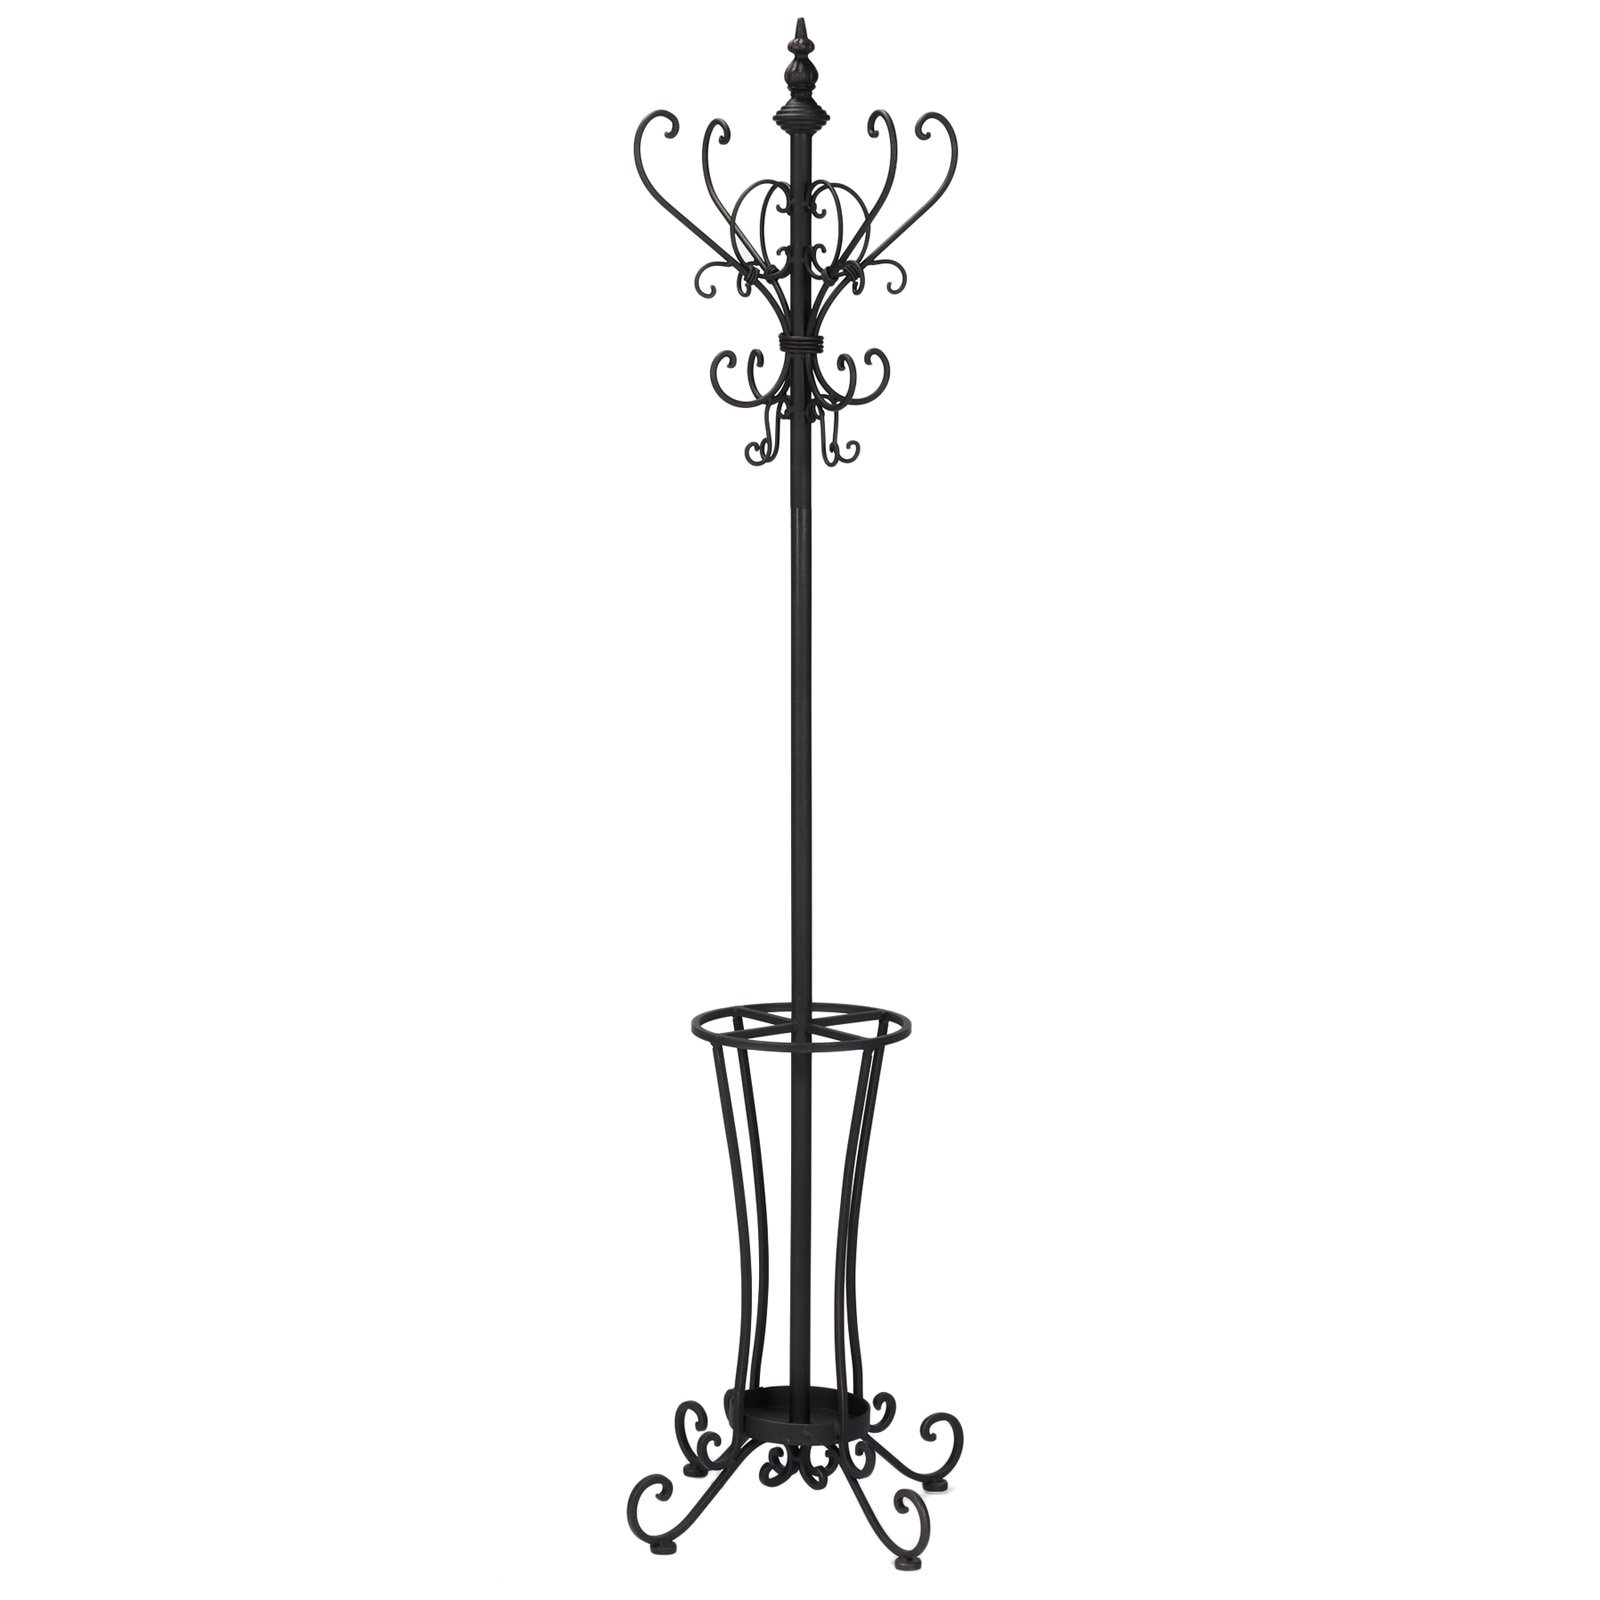 Southern Enterprises Rustic Metal Scroll Hall Tree 71'' Tall, Black Finish by Southern Enterprises, Inc.